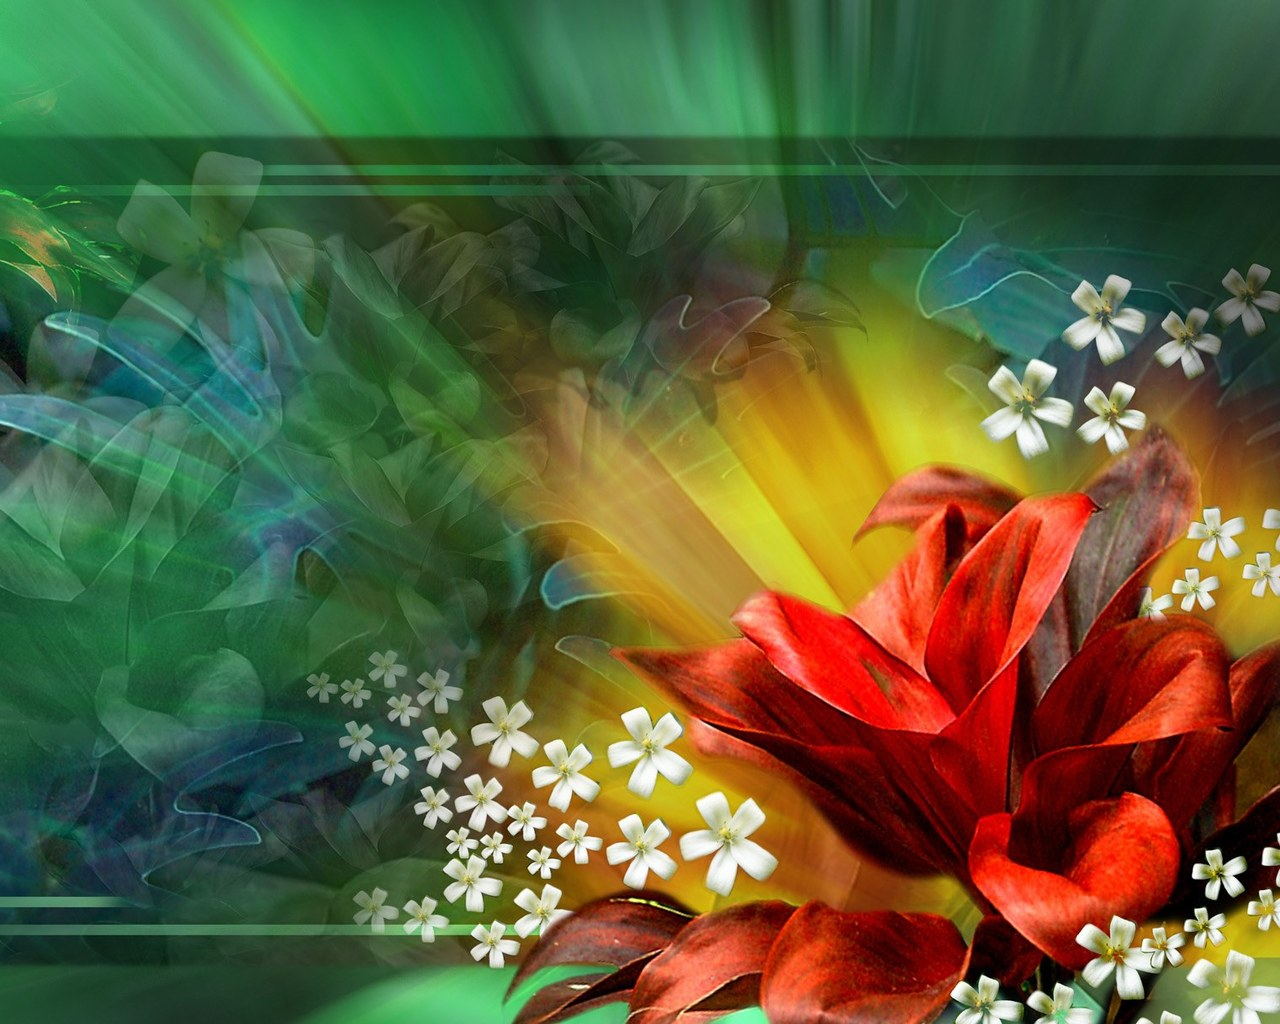 Desktop Backgrounds Wallpaper PC 3D Graphics Cherry 3d 1280x1024